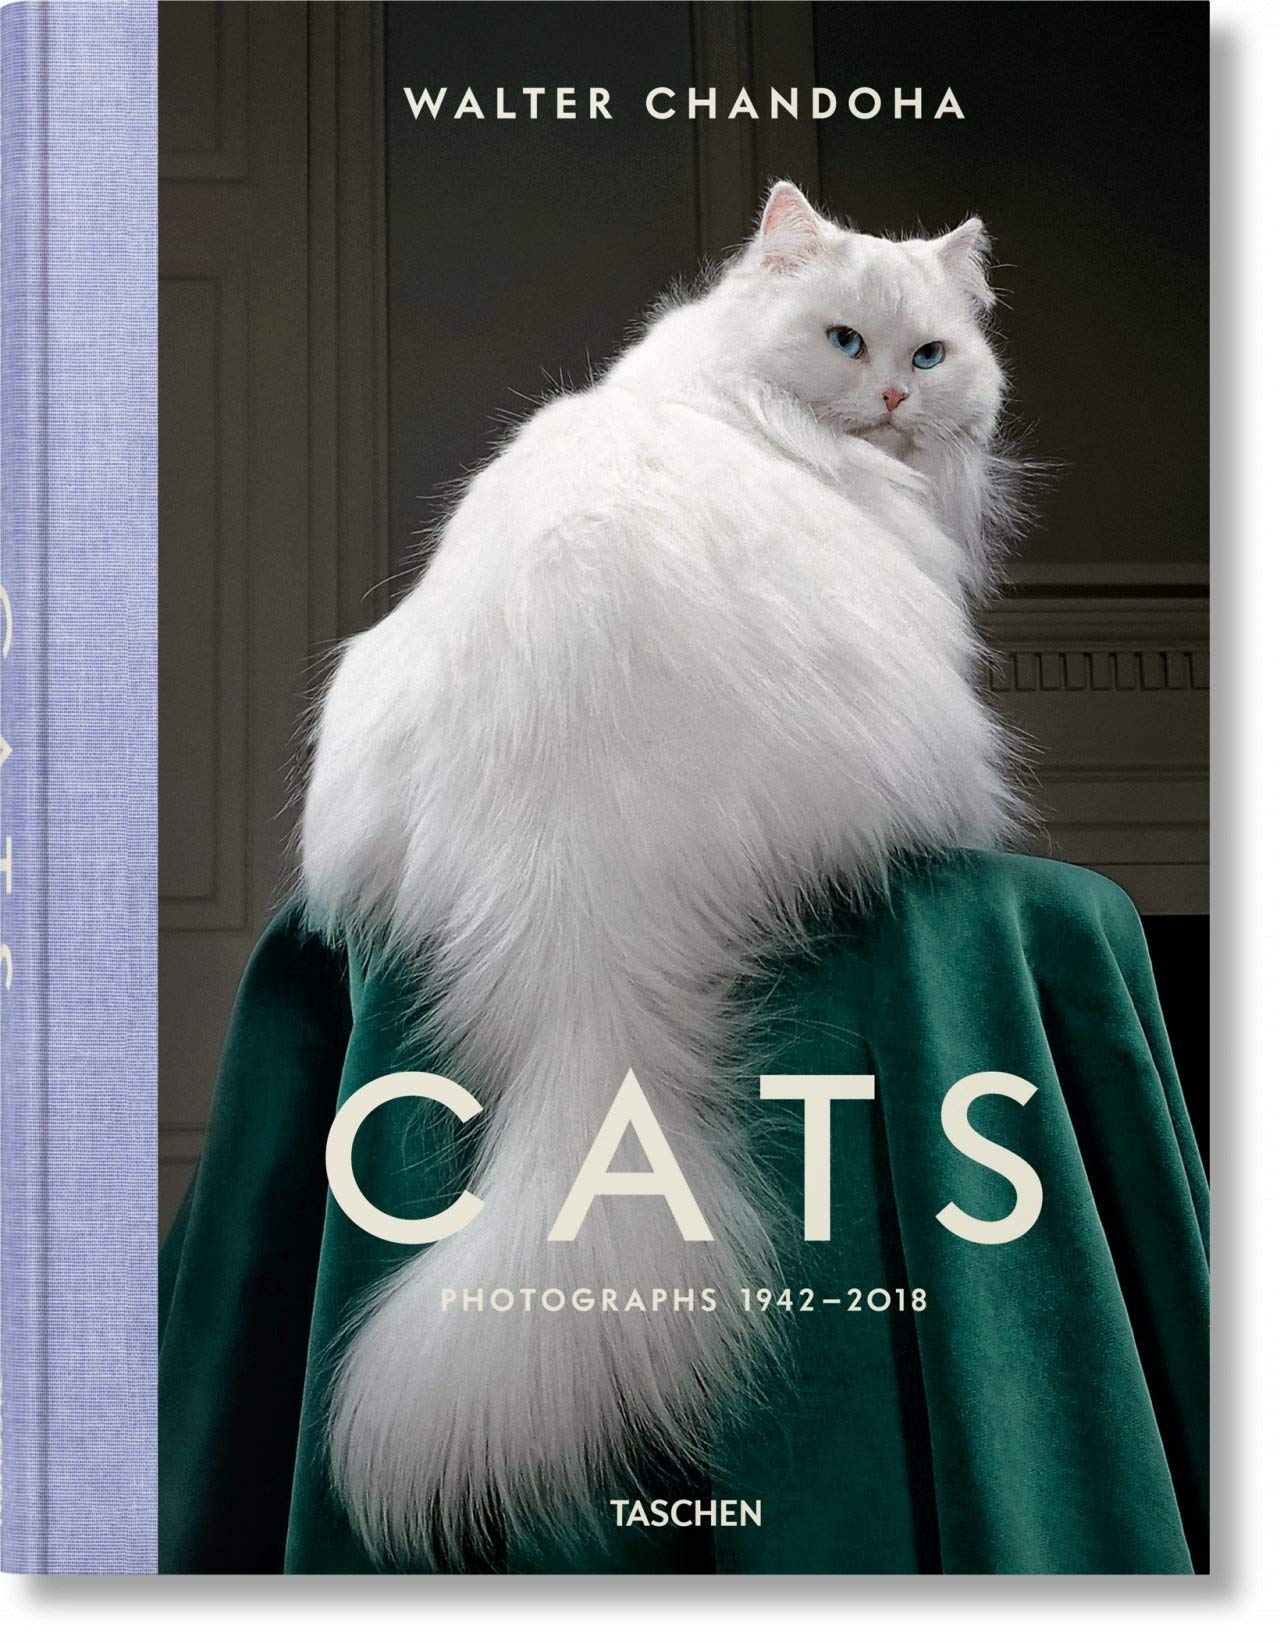 Coffee table book with white cat on cover